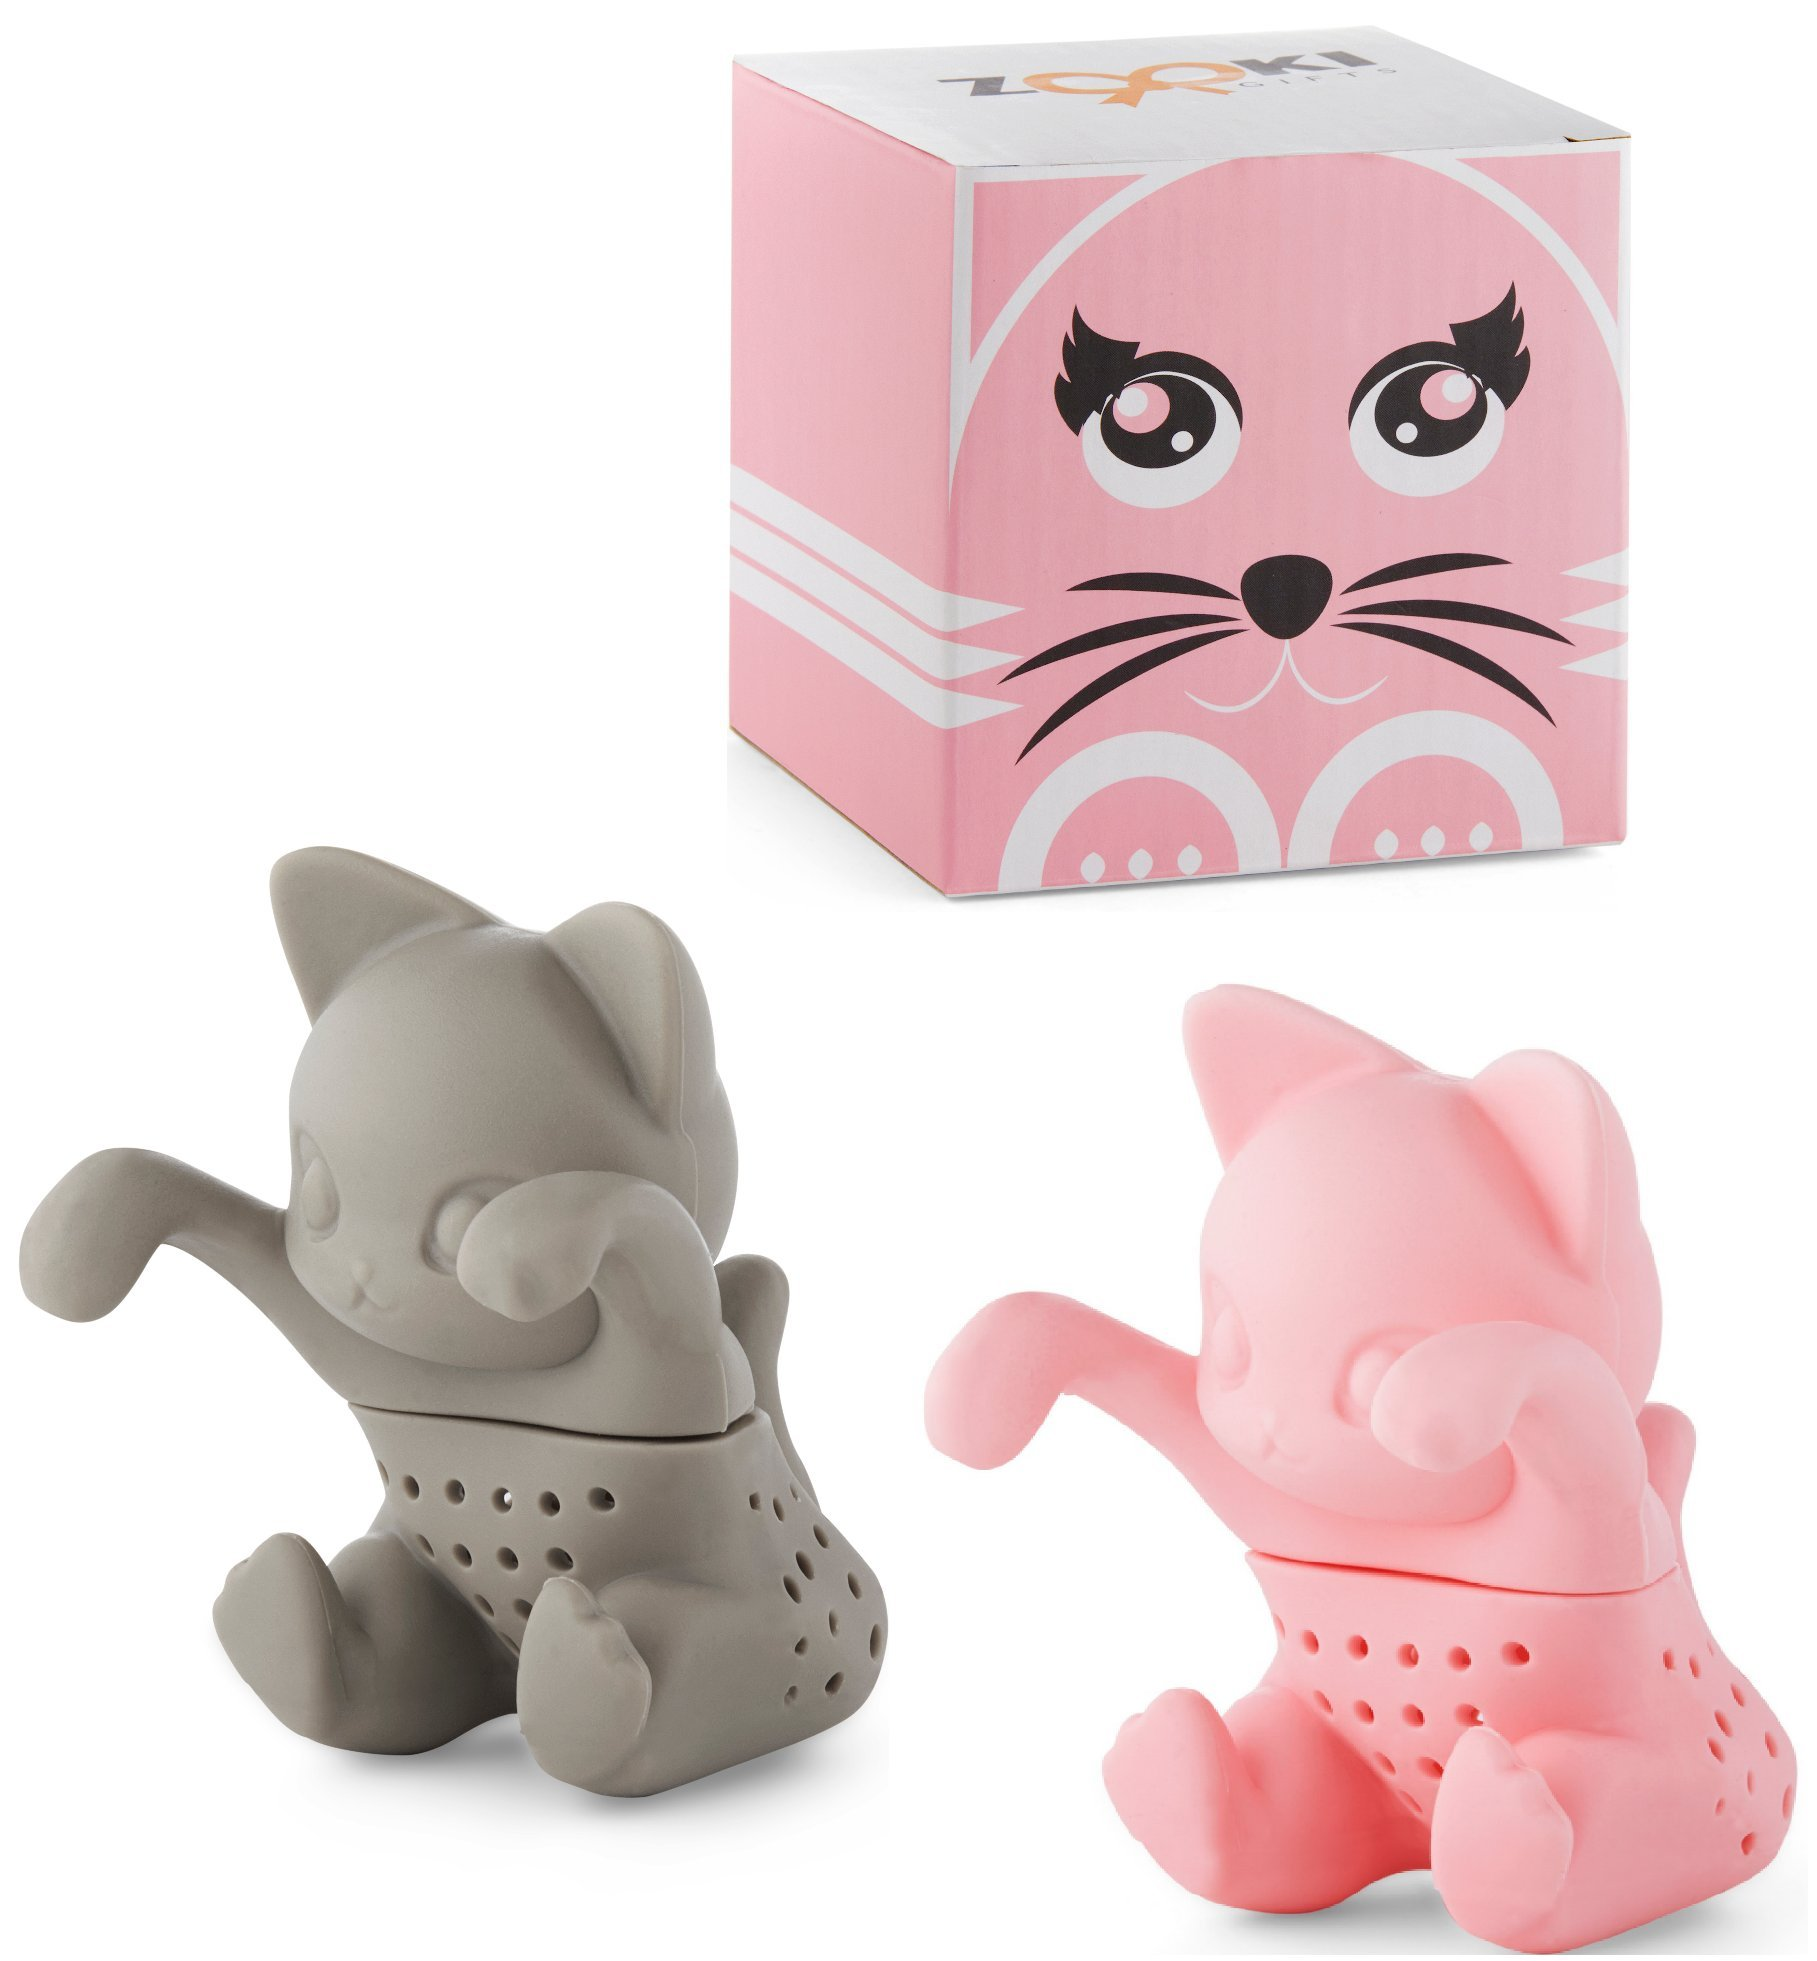 2x cat shaped tea infuser / steeper / strainer for loose tea leaves. INCLUDES SUPER-CUTE GIFT BOX & FREE EBOOK!